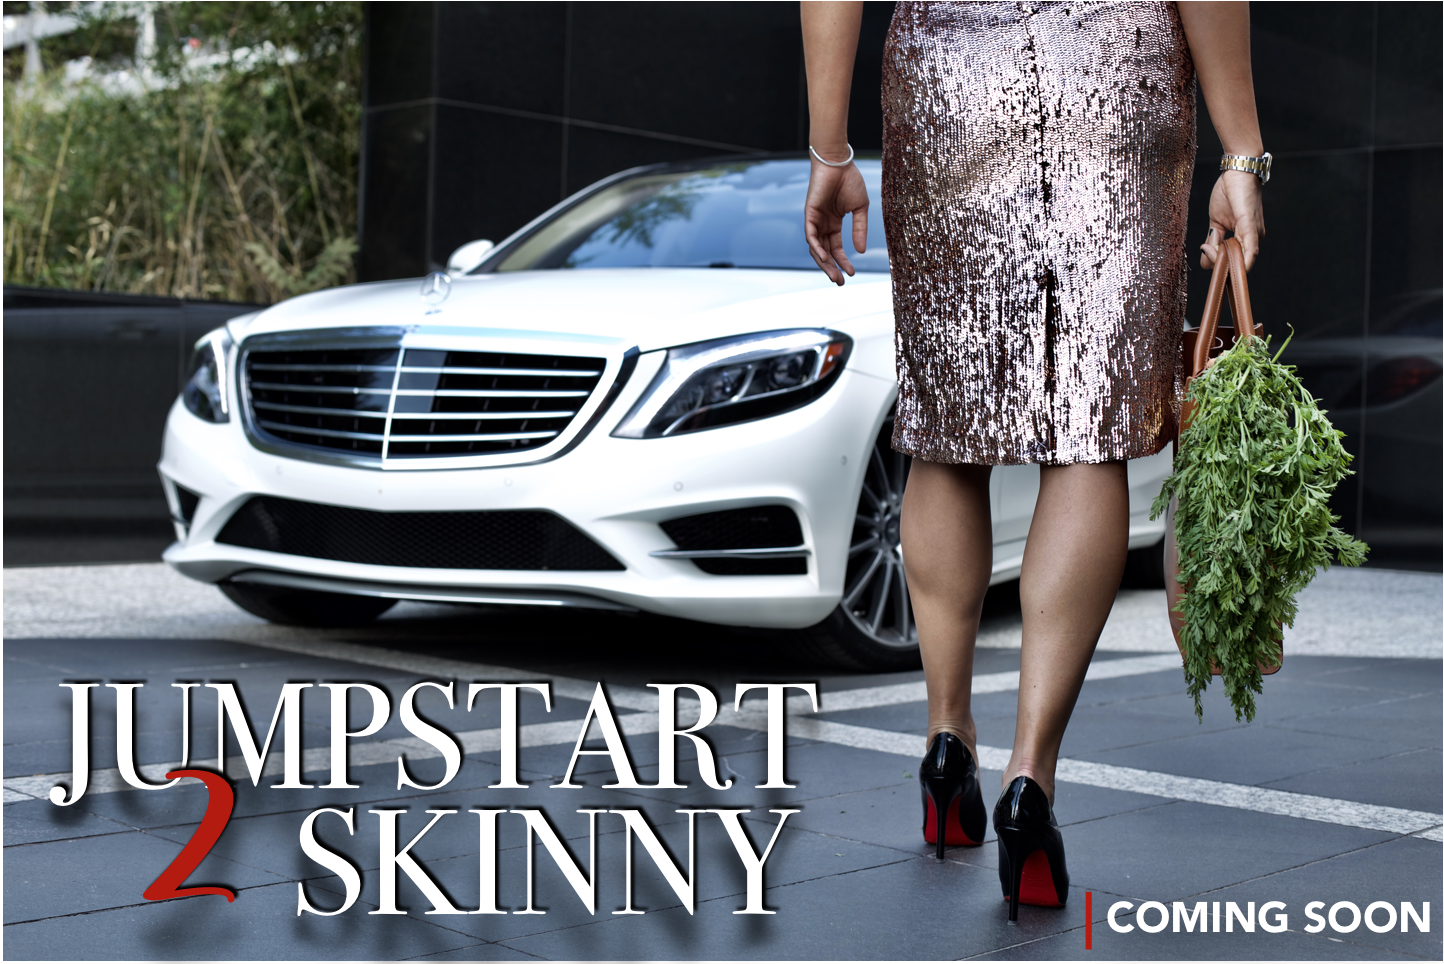 Jumpstart-to-Skinny-Video-Series-Opt-In